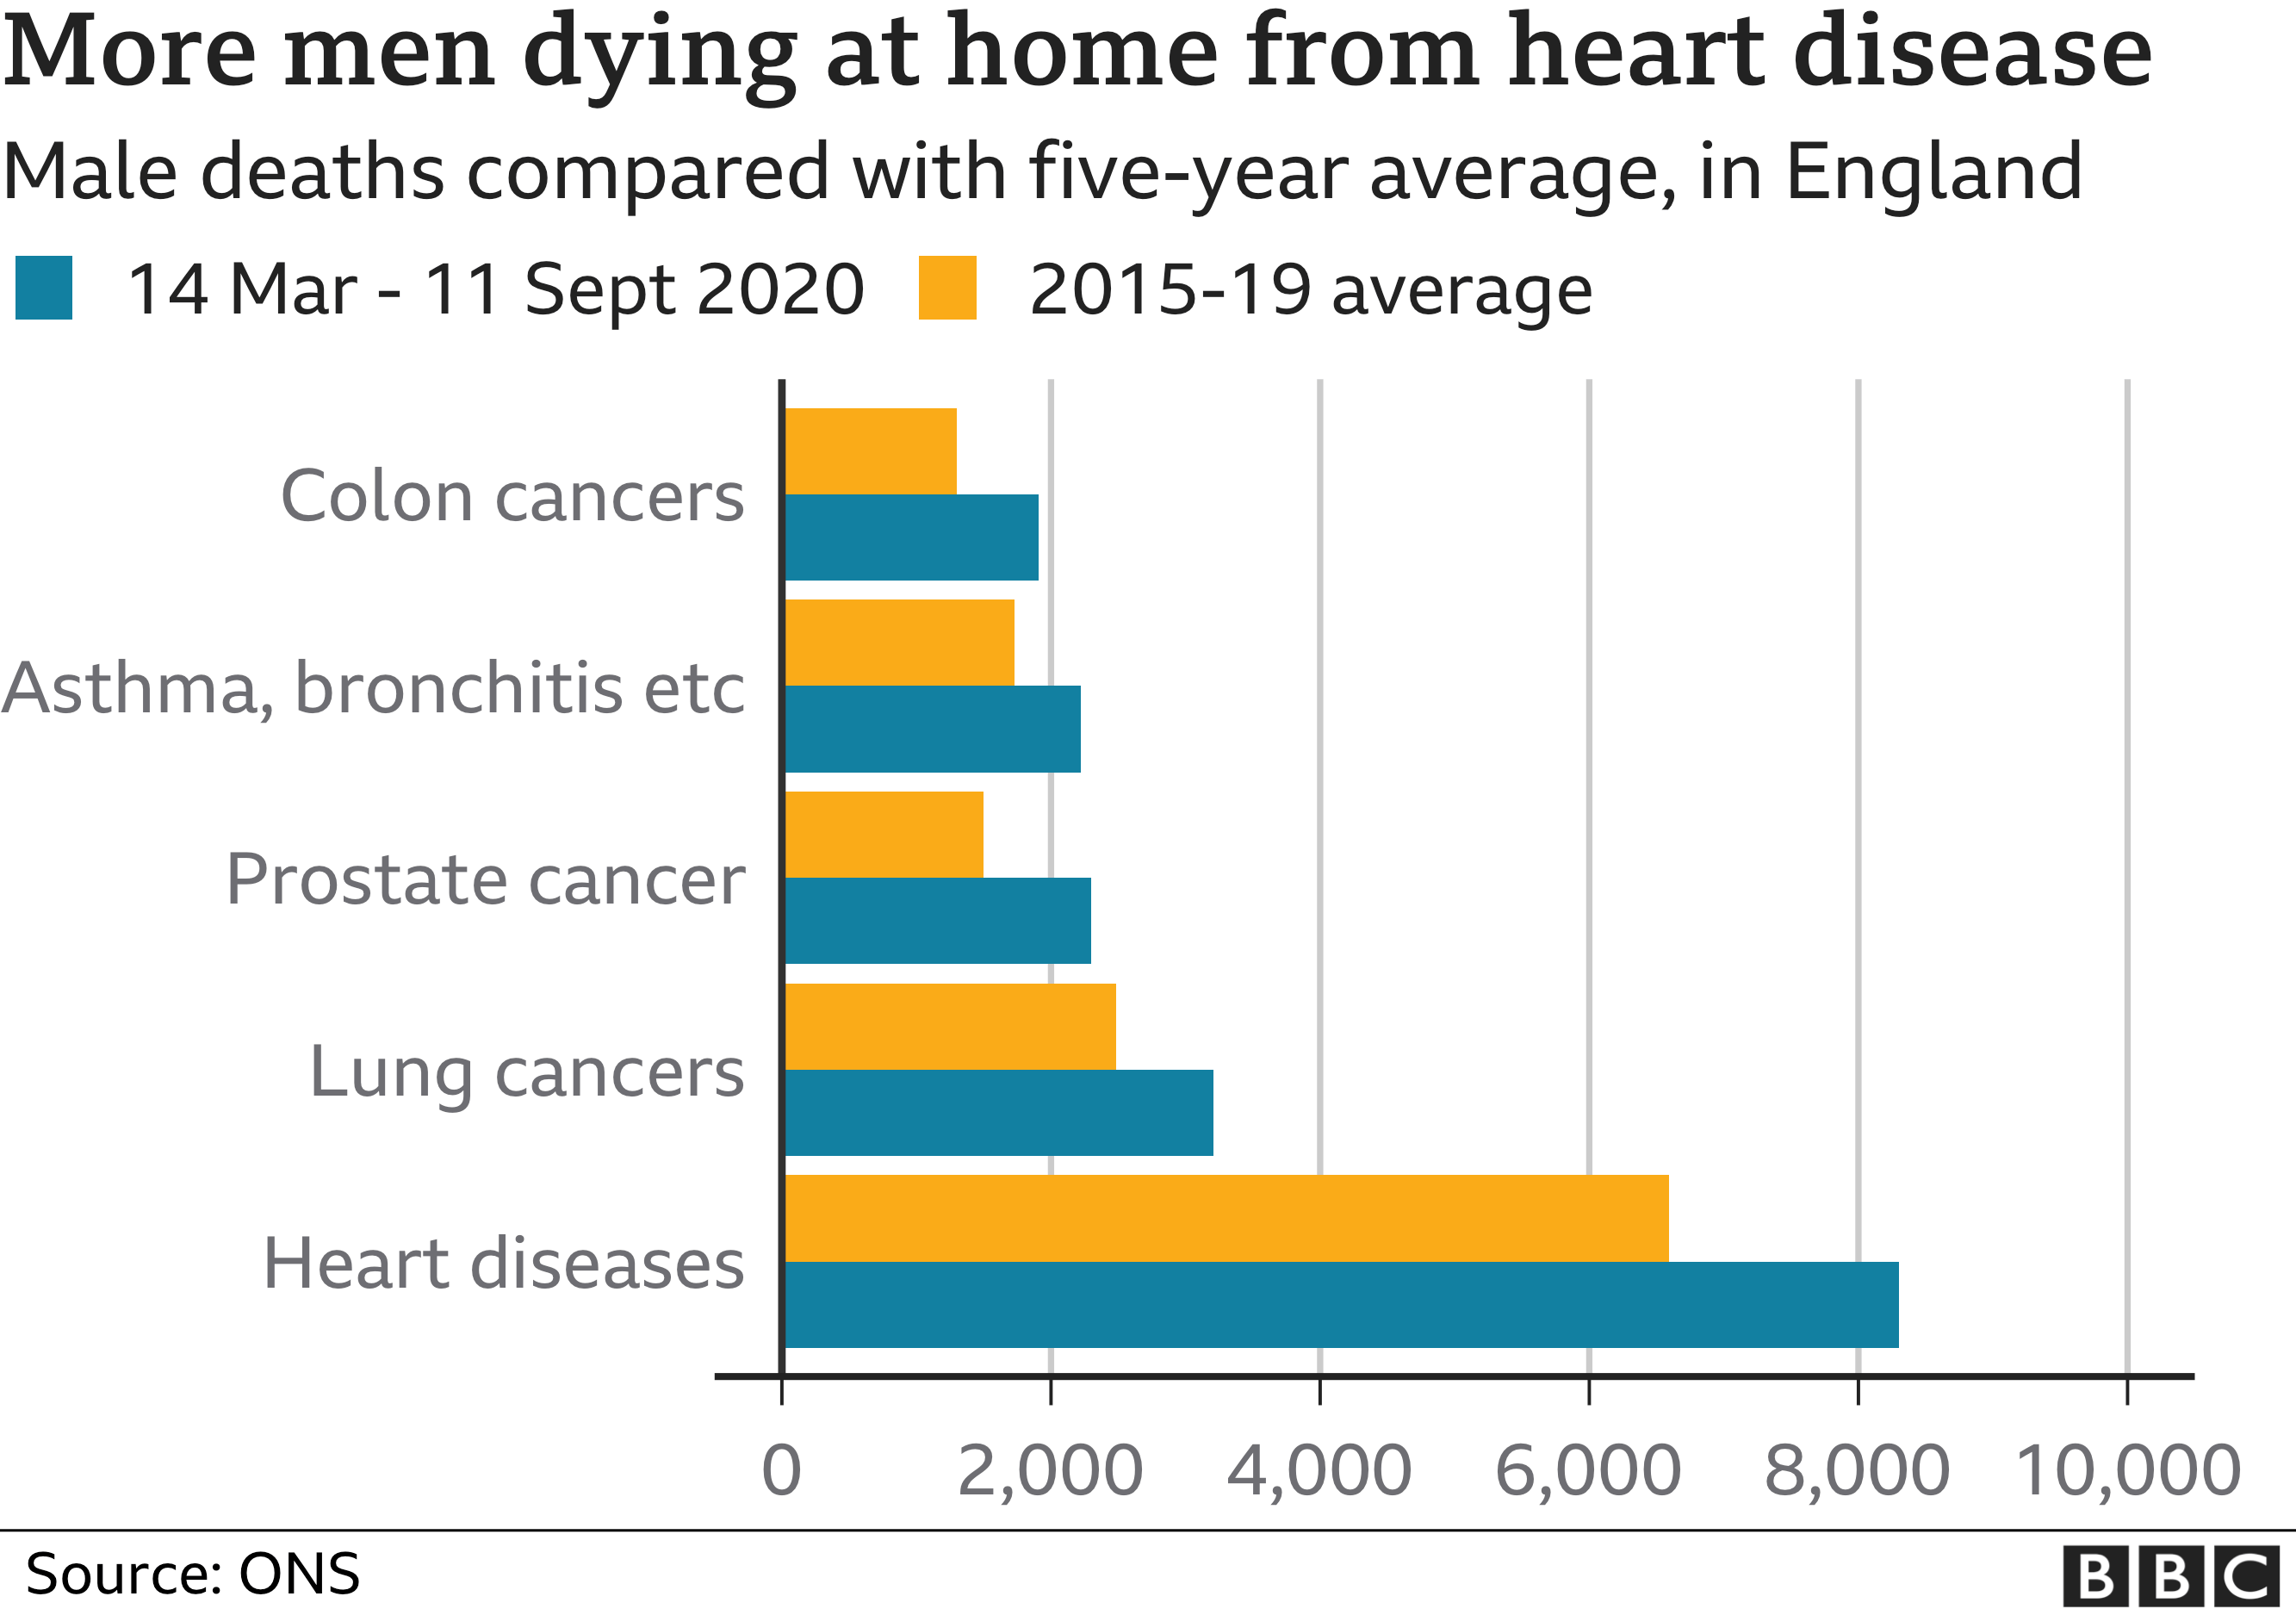 More men than normal dying in their own home from major causes in England